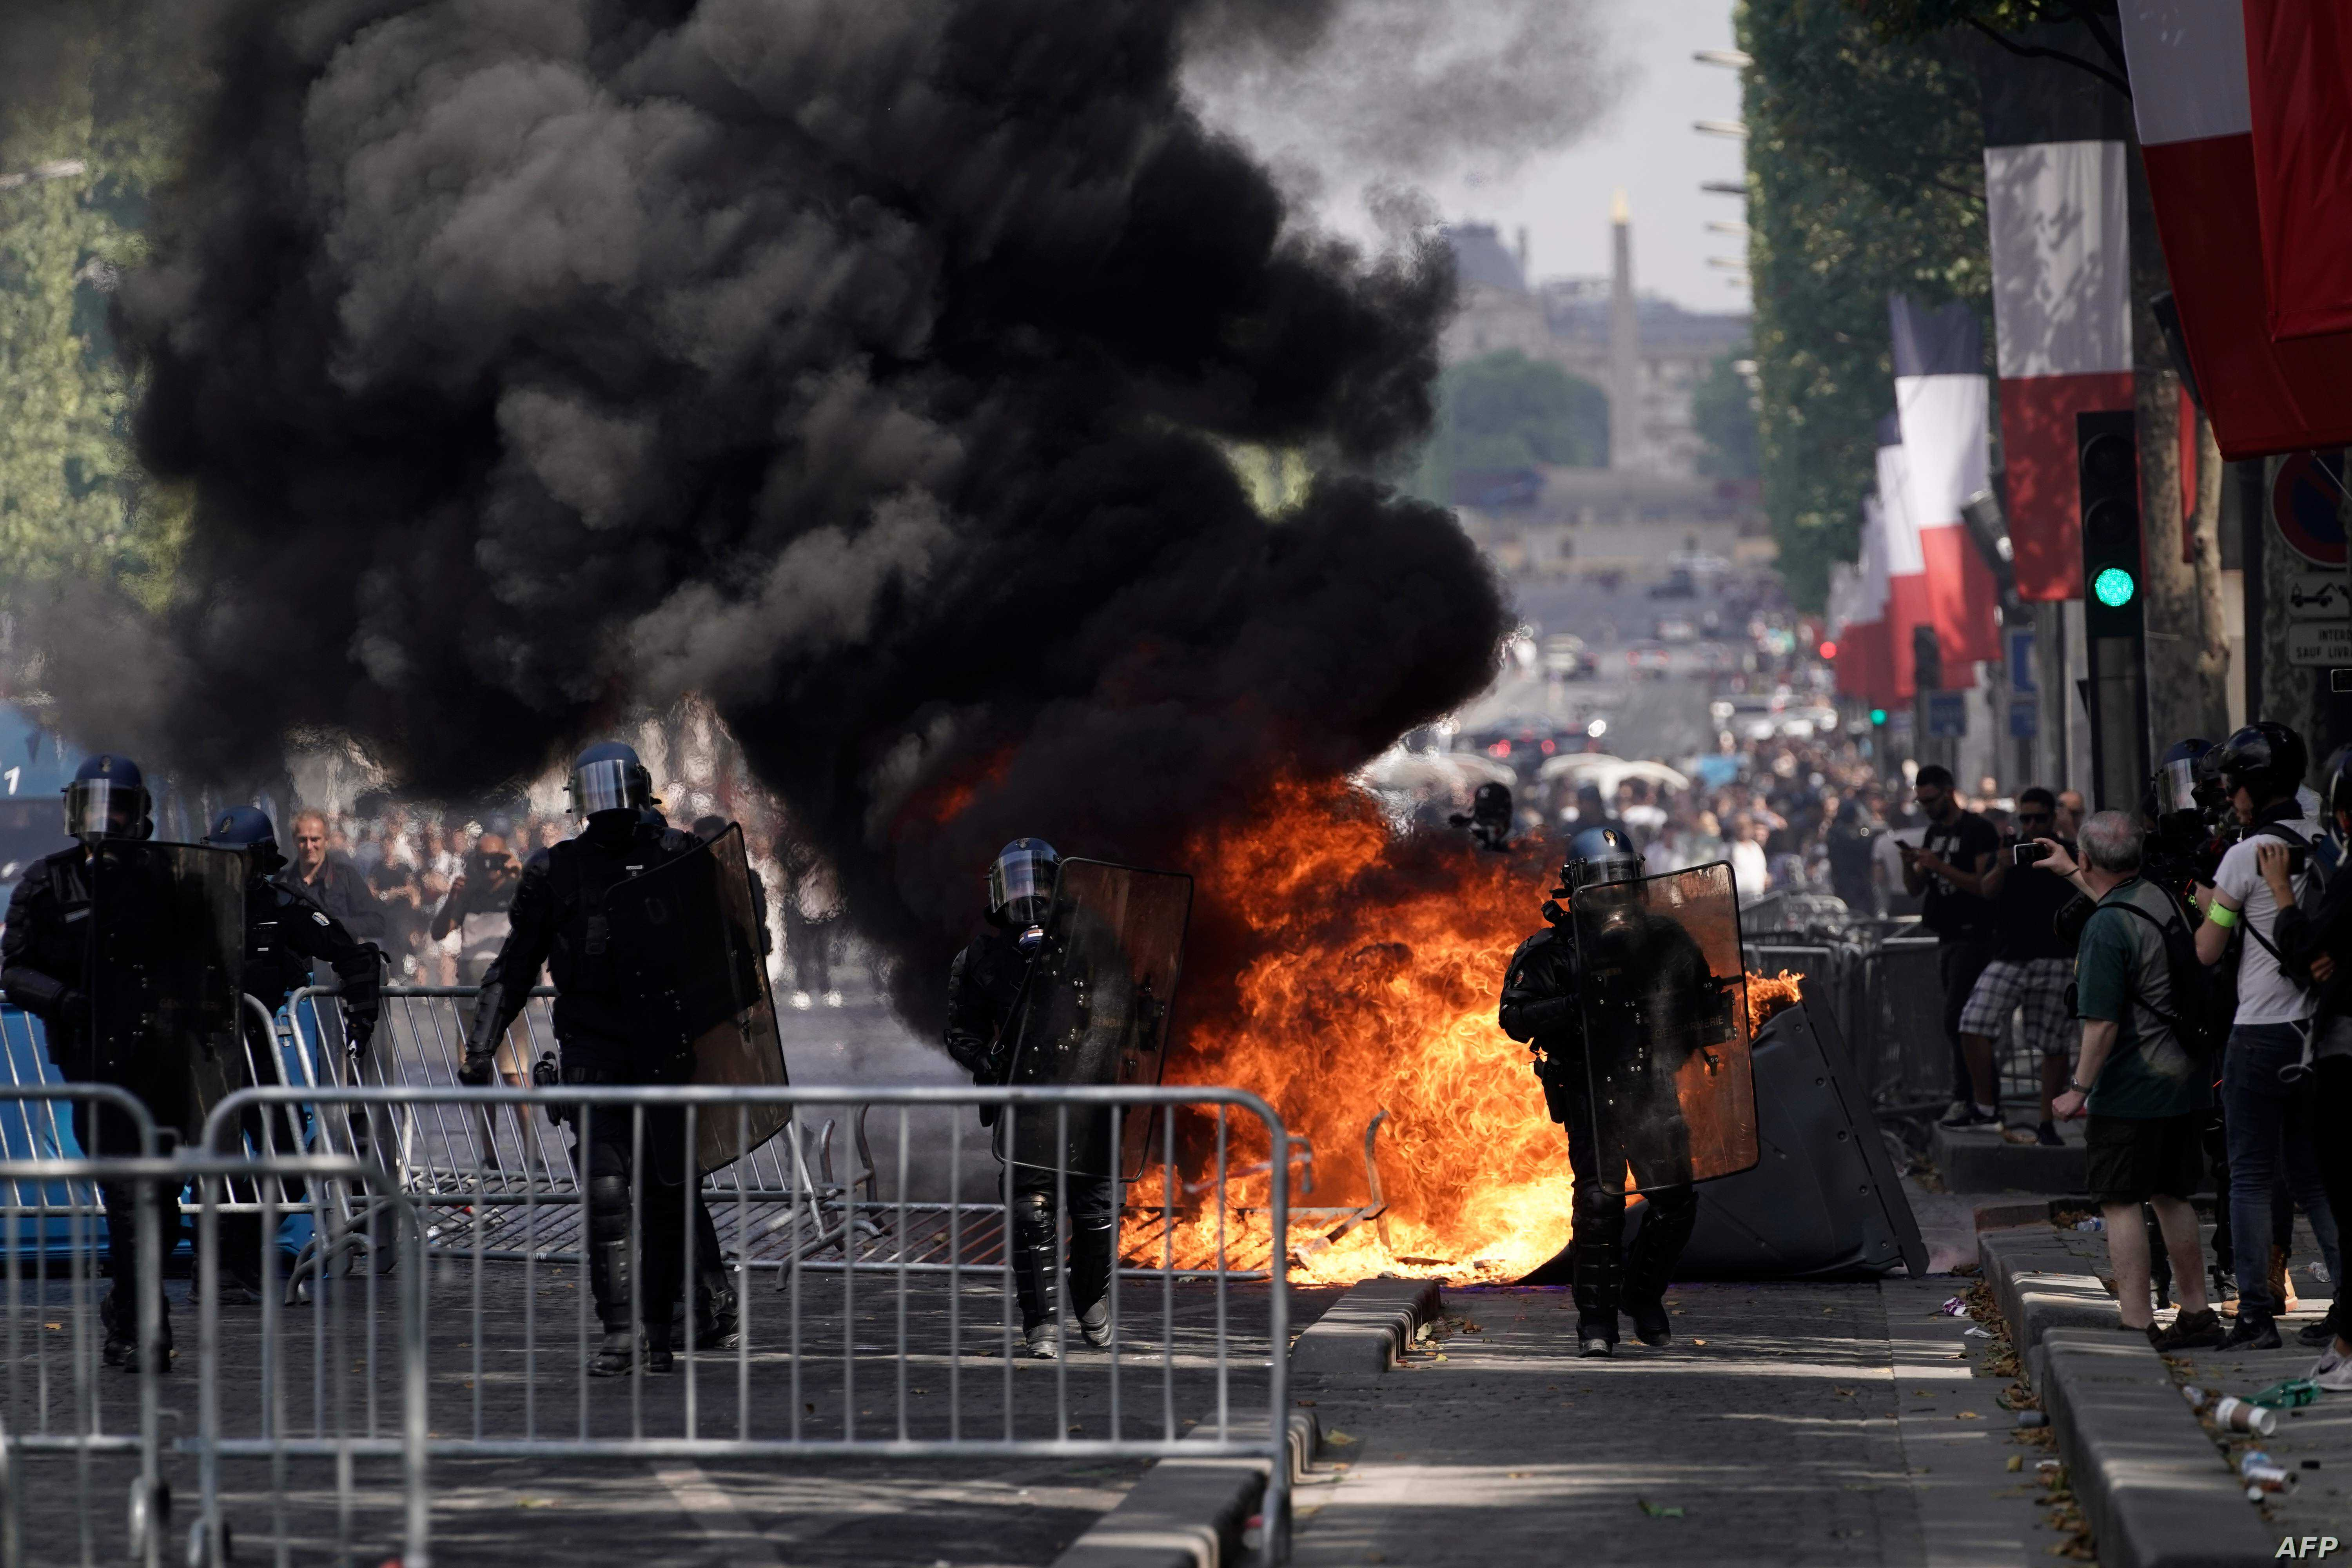 Members of the Gendarmerie stand in front of fences and a fire as protesters linked to the Yellow Vests movement (unseen) take part in a demonstration on the side of the annual Bastille Day ceremony, July 14, 2019, on the Champs-Elysees in Paris.